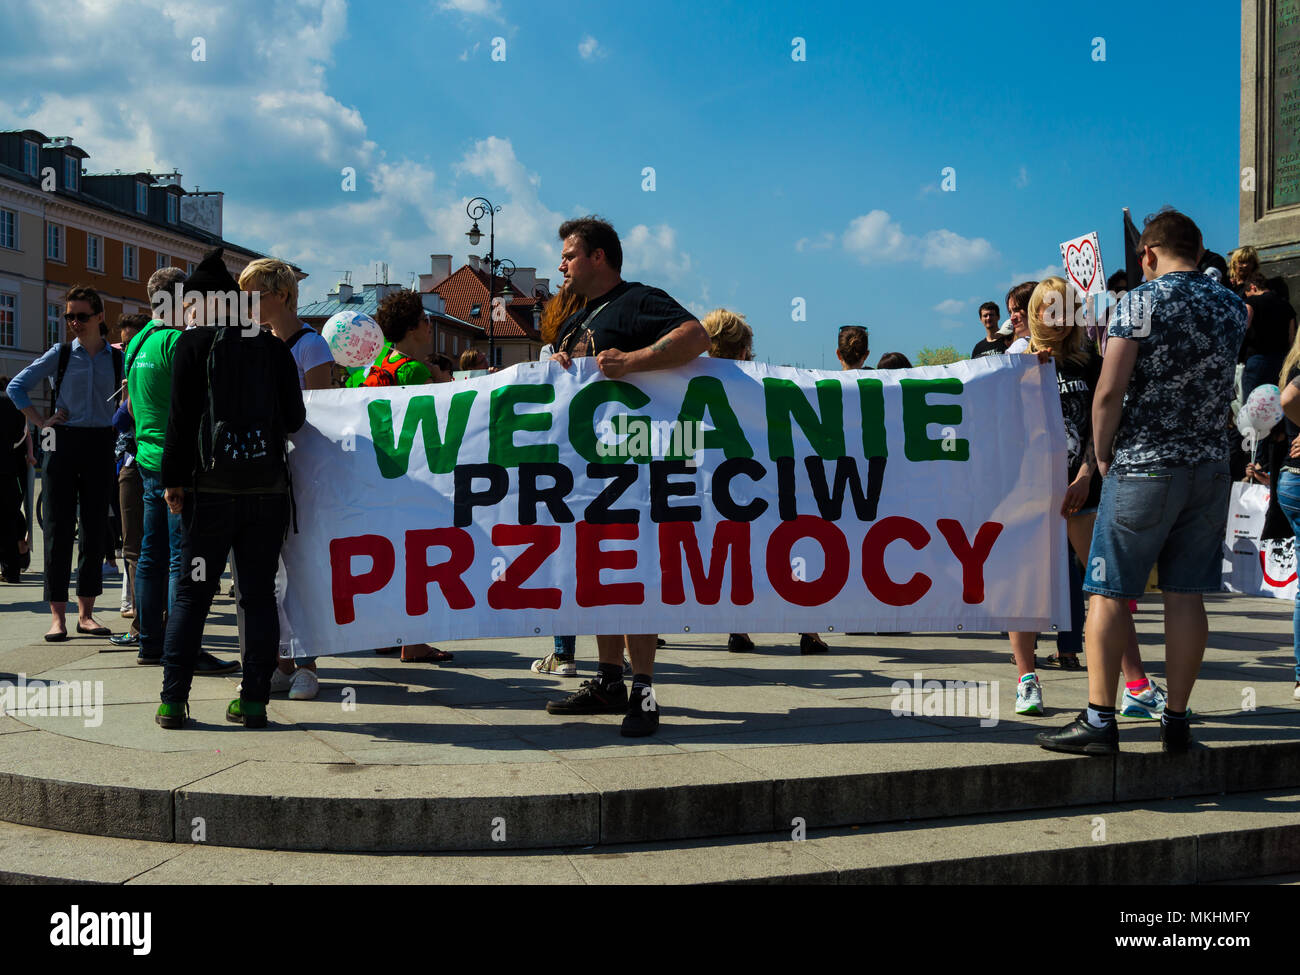 Vegan manifestation for animal rights in the Warsaw's Castle Square. Activists hold a sign with the phrase 'Vegans against violence'. - Stock Image